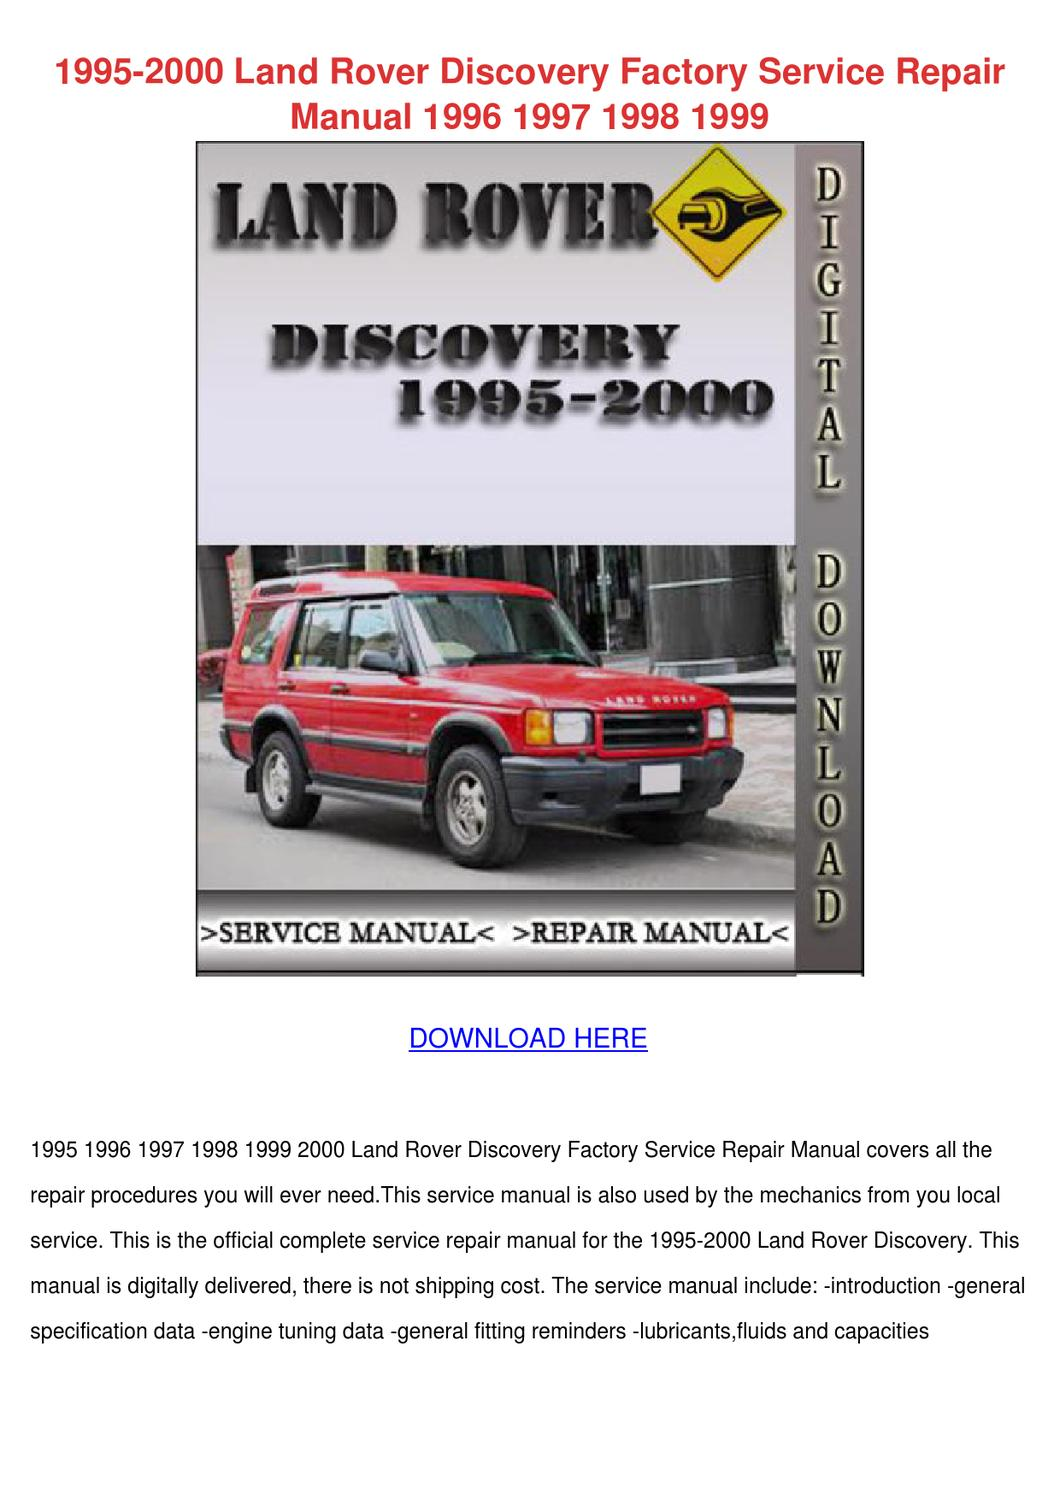 1995 2000 Land Rover Discovery Factory Servic by BevArthur - issuu